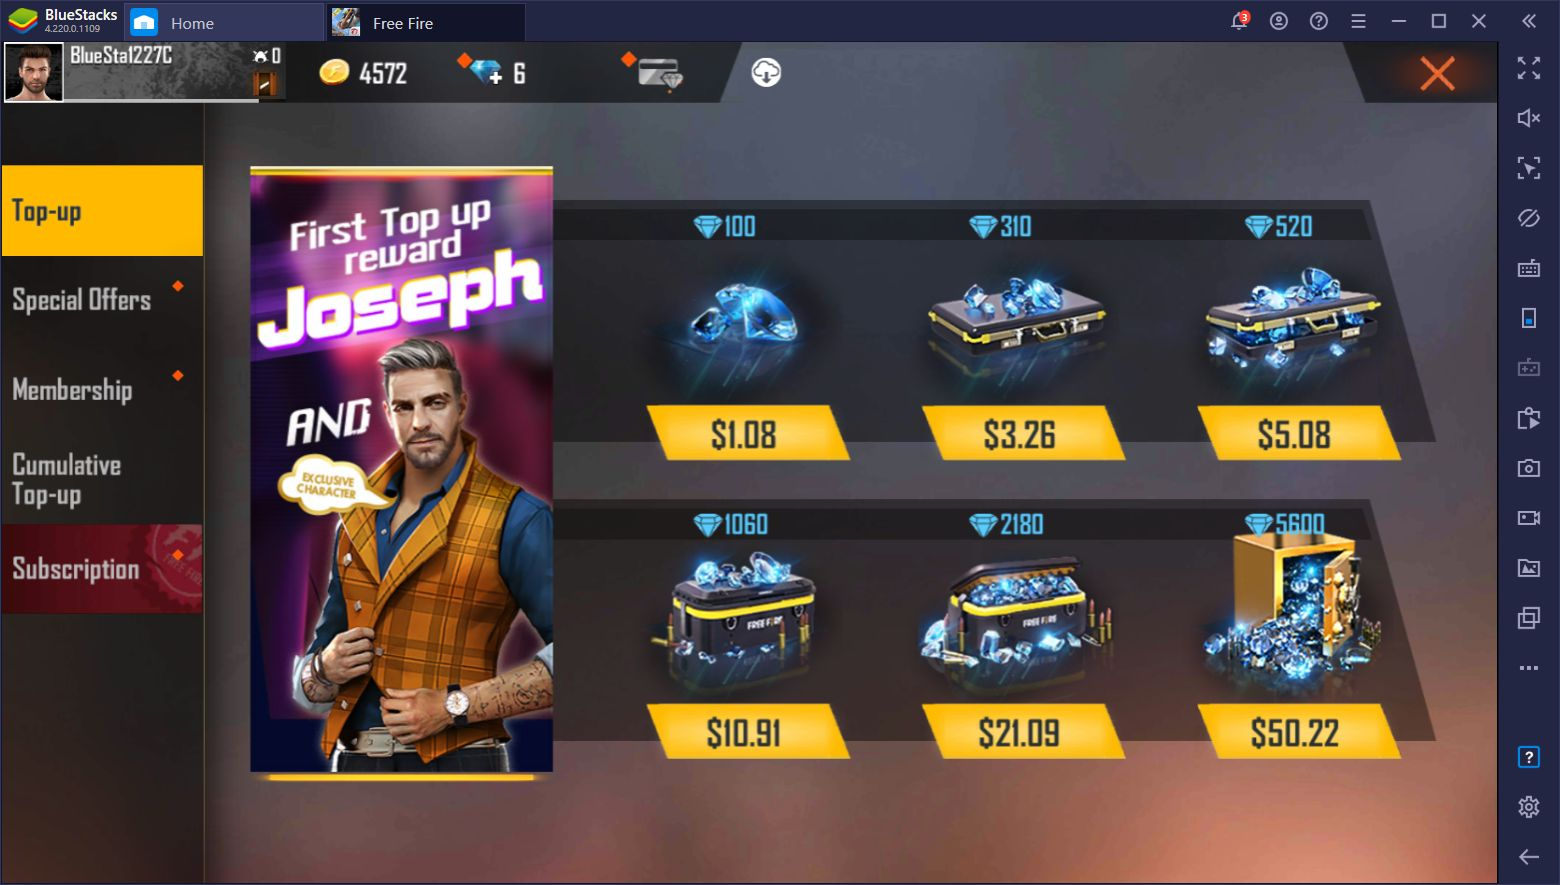 Free Fire Diamond Top Up - How to Top Up Free Fire Diamonds and Get  Exclusive Discounts | BlueStacks